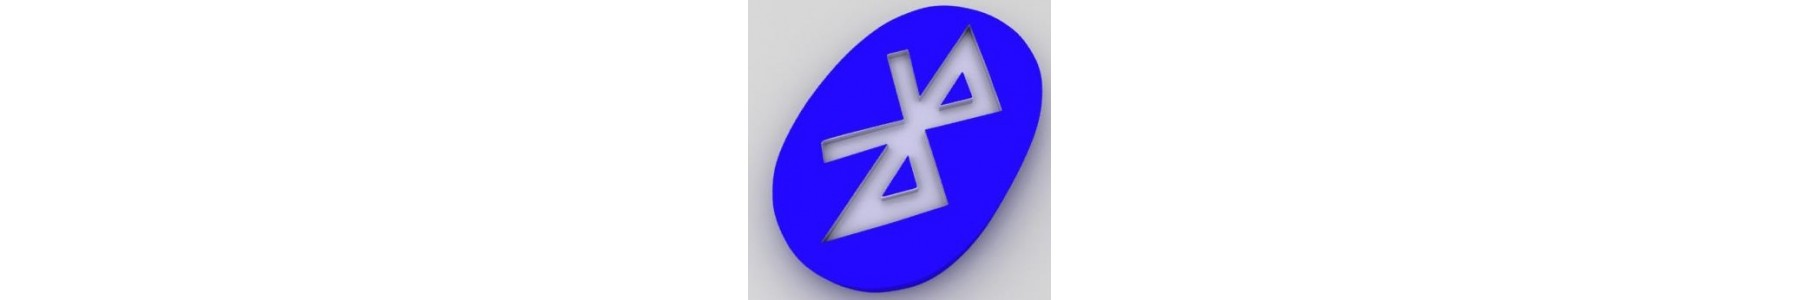 Bluetooth Products for sale online in South Africa from Geewiz